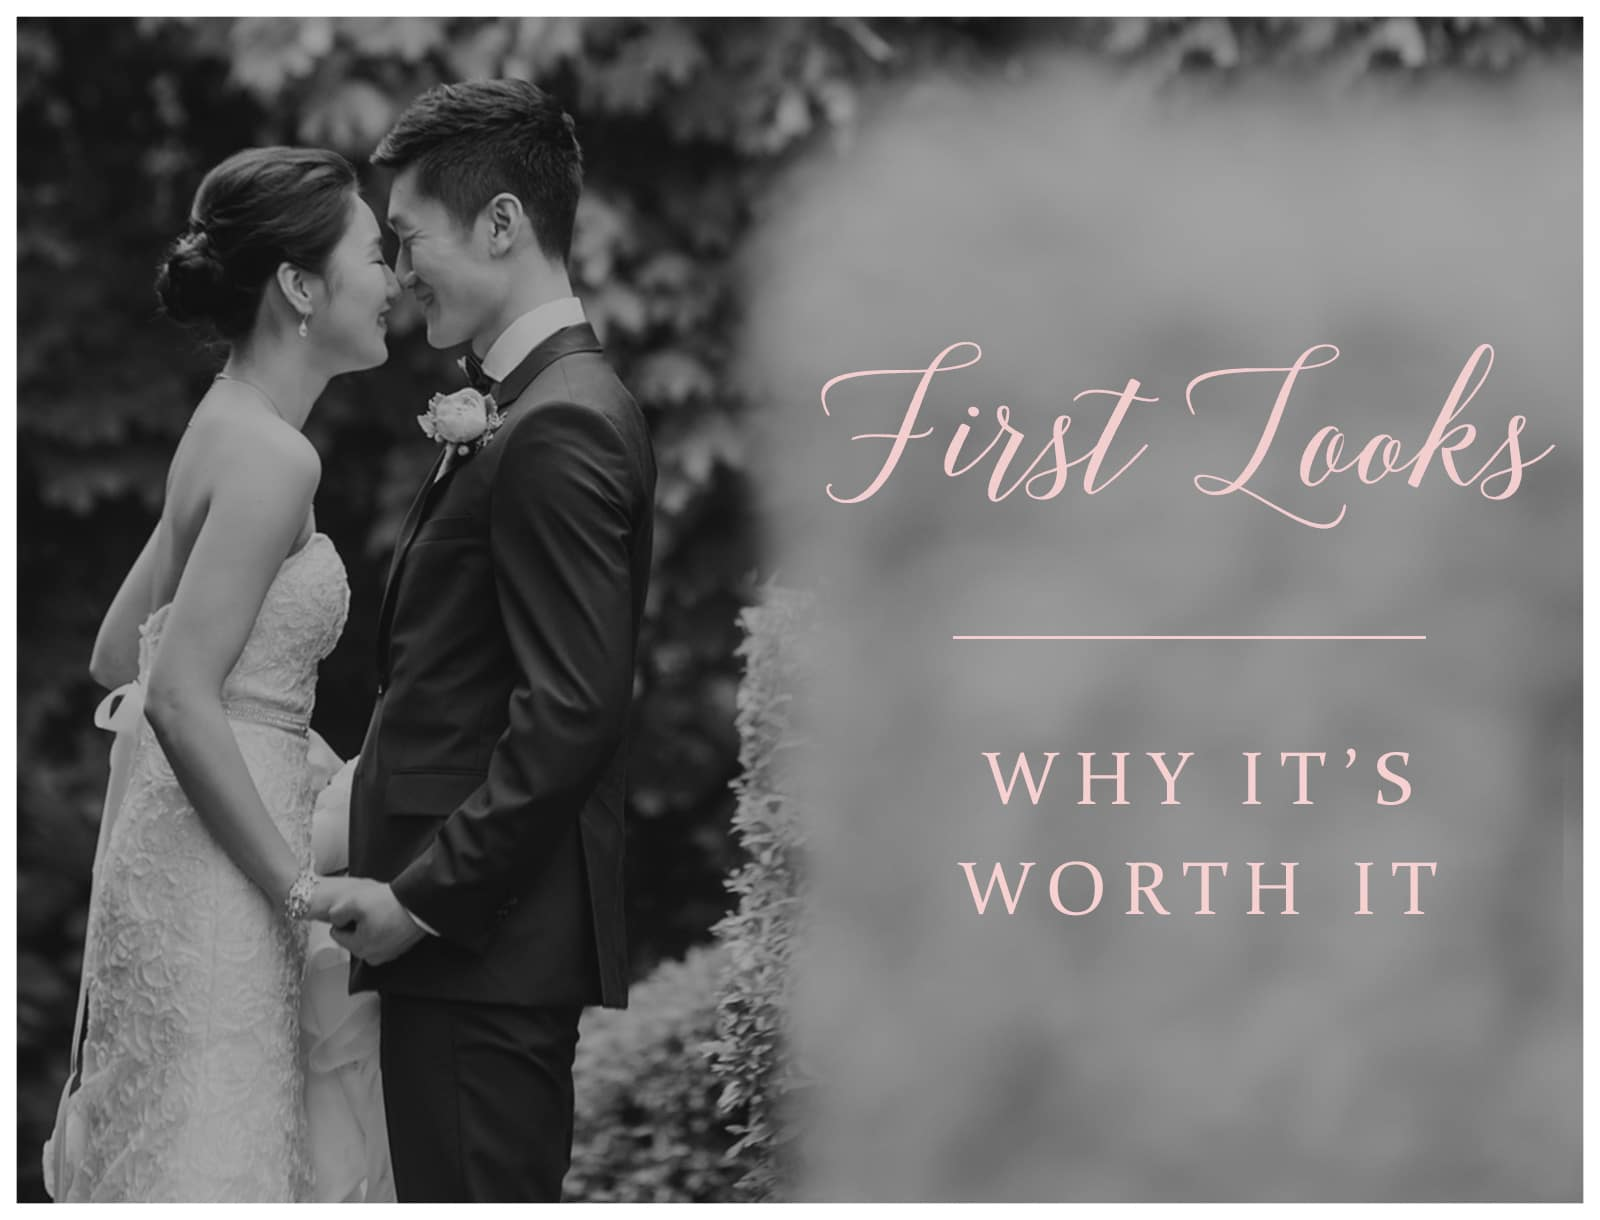 First Looks: 5 Reasons Why It's Worth It